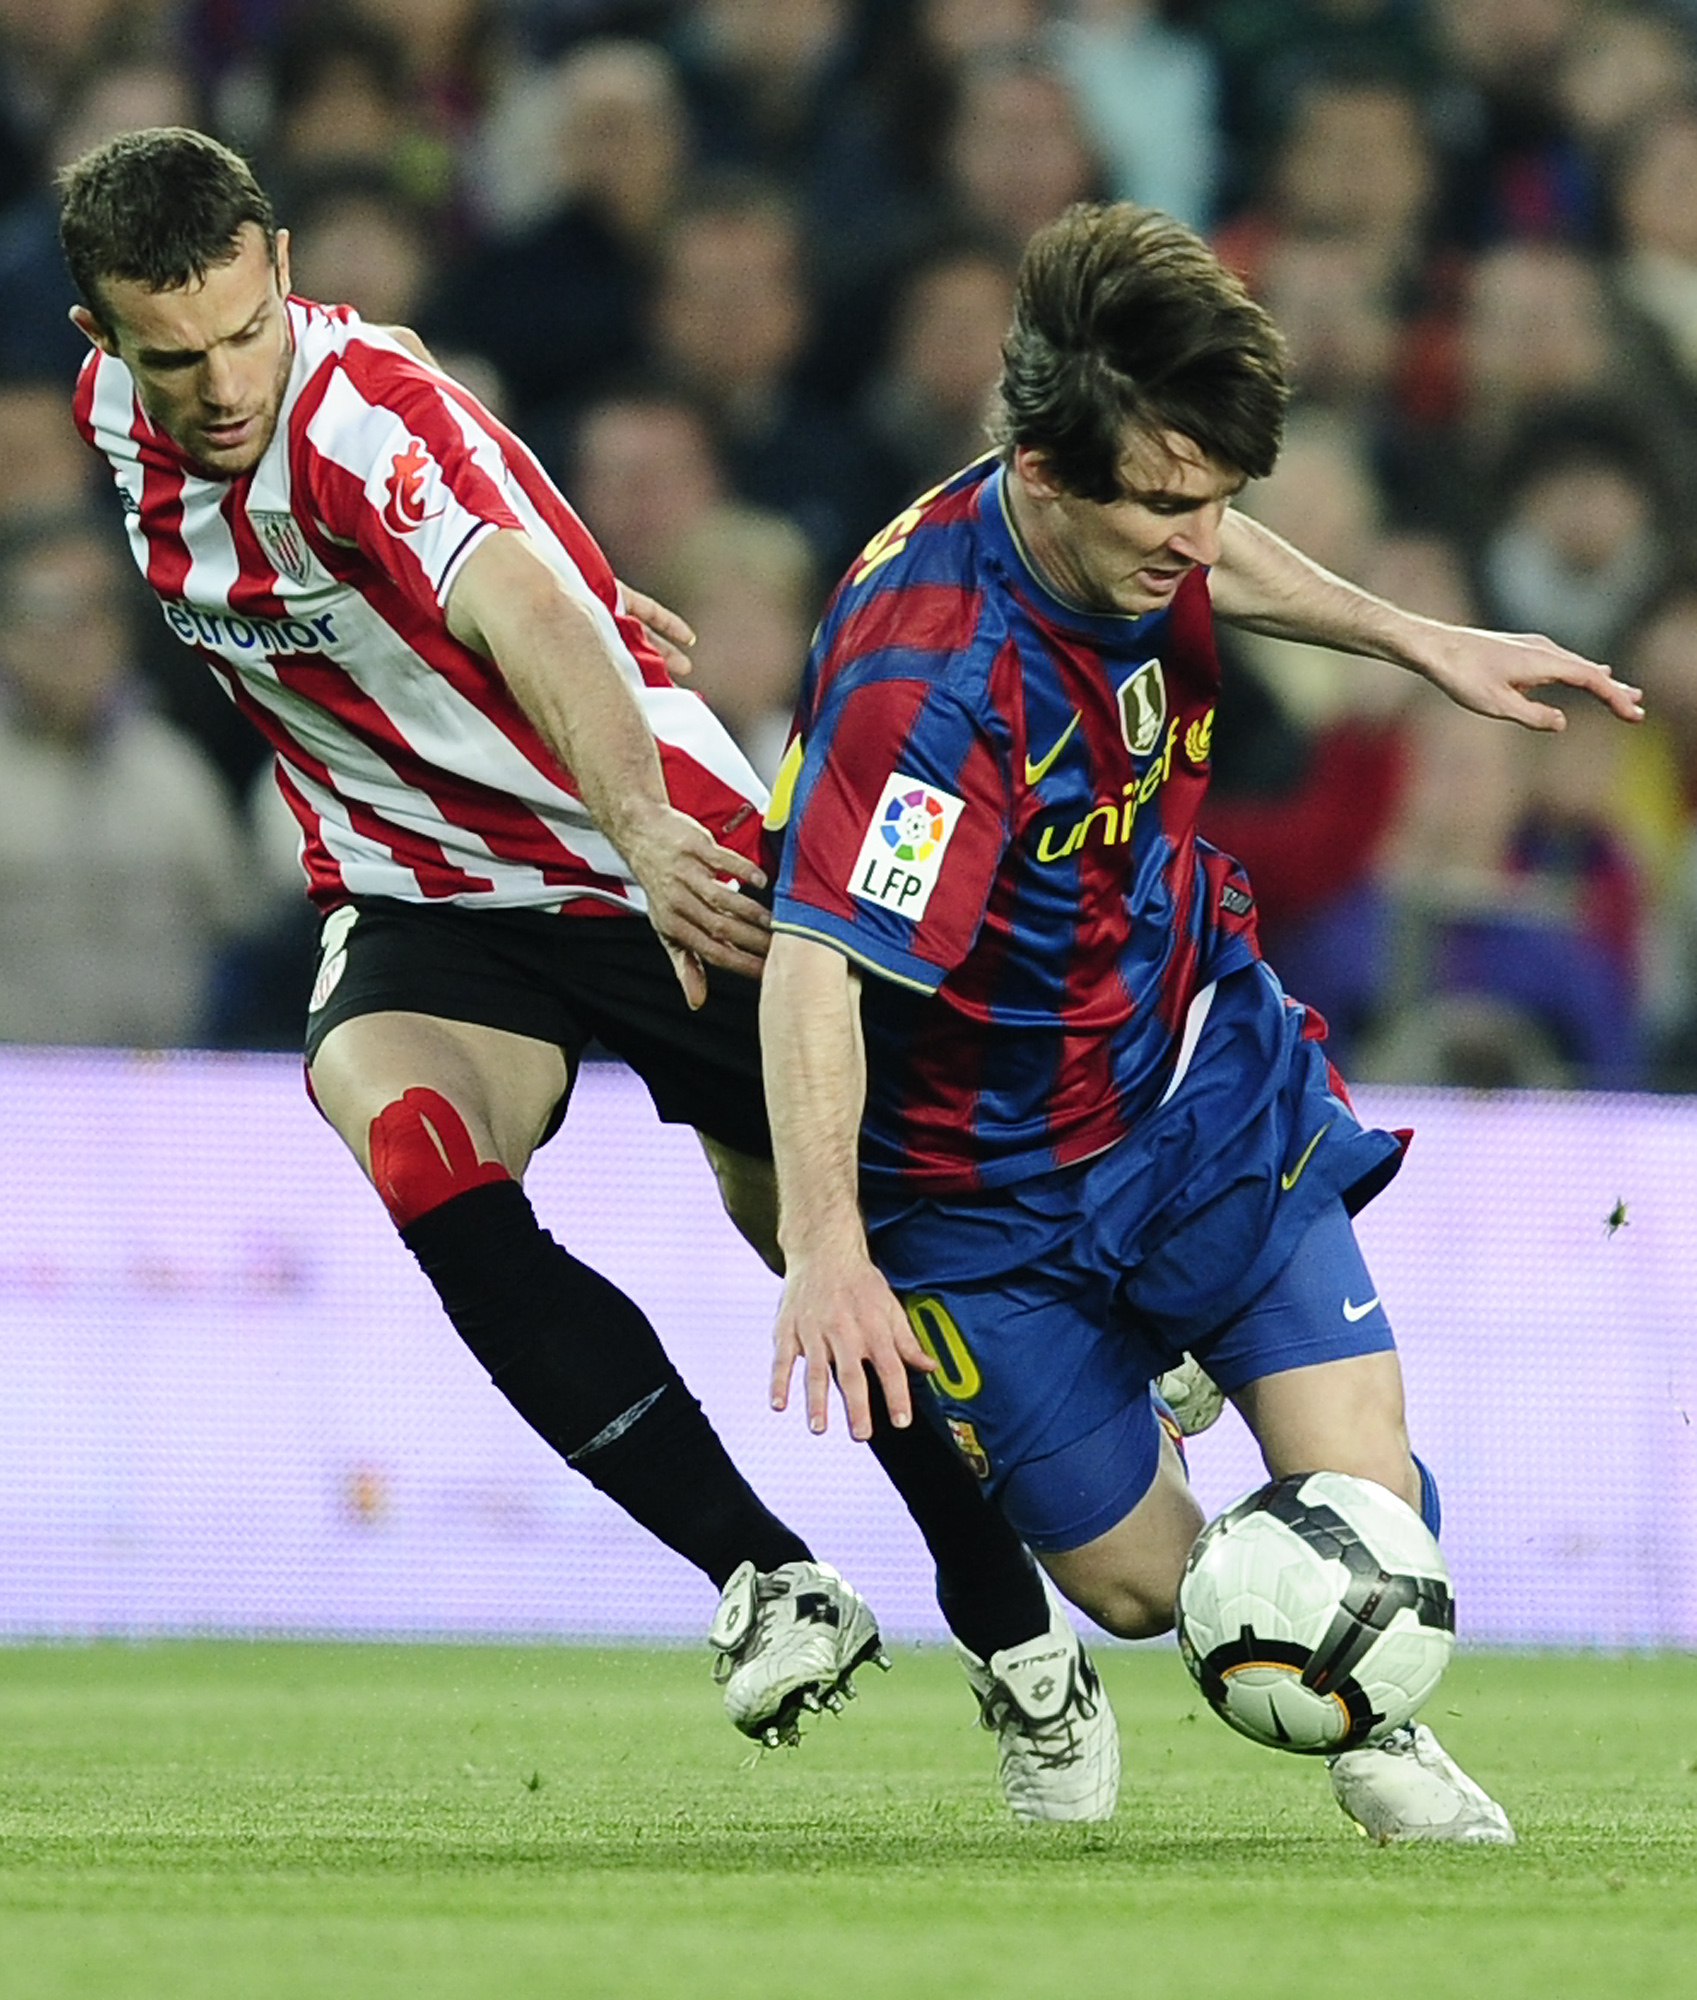 FC Barcelona's Lionel Messi from Argentina, right, duels for the ball against Athletic Bilbao's Koikili Lertxundi during their Spanish La Liga soccer ...